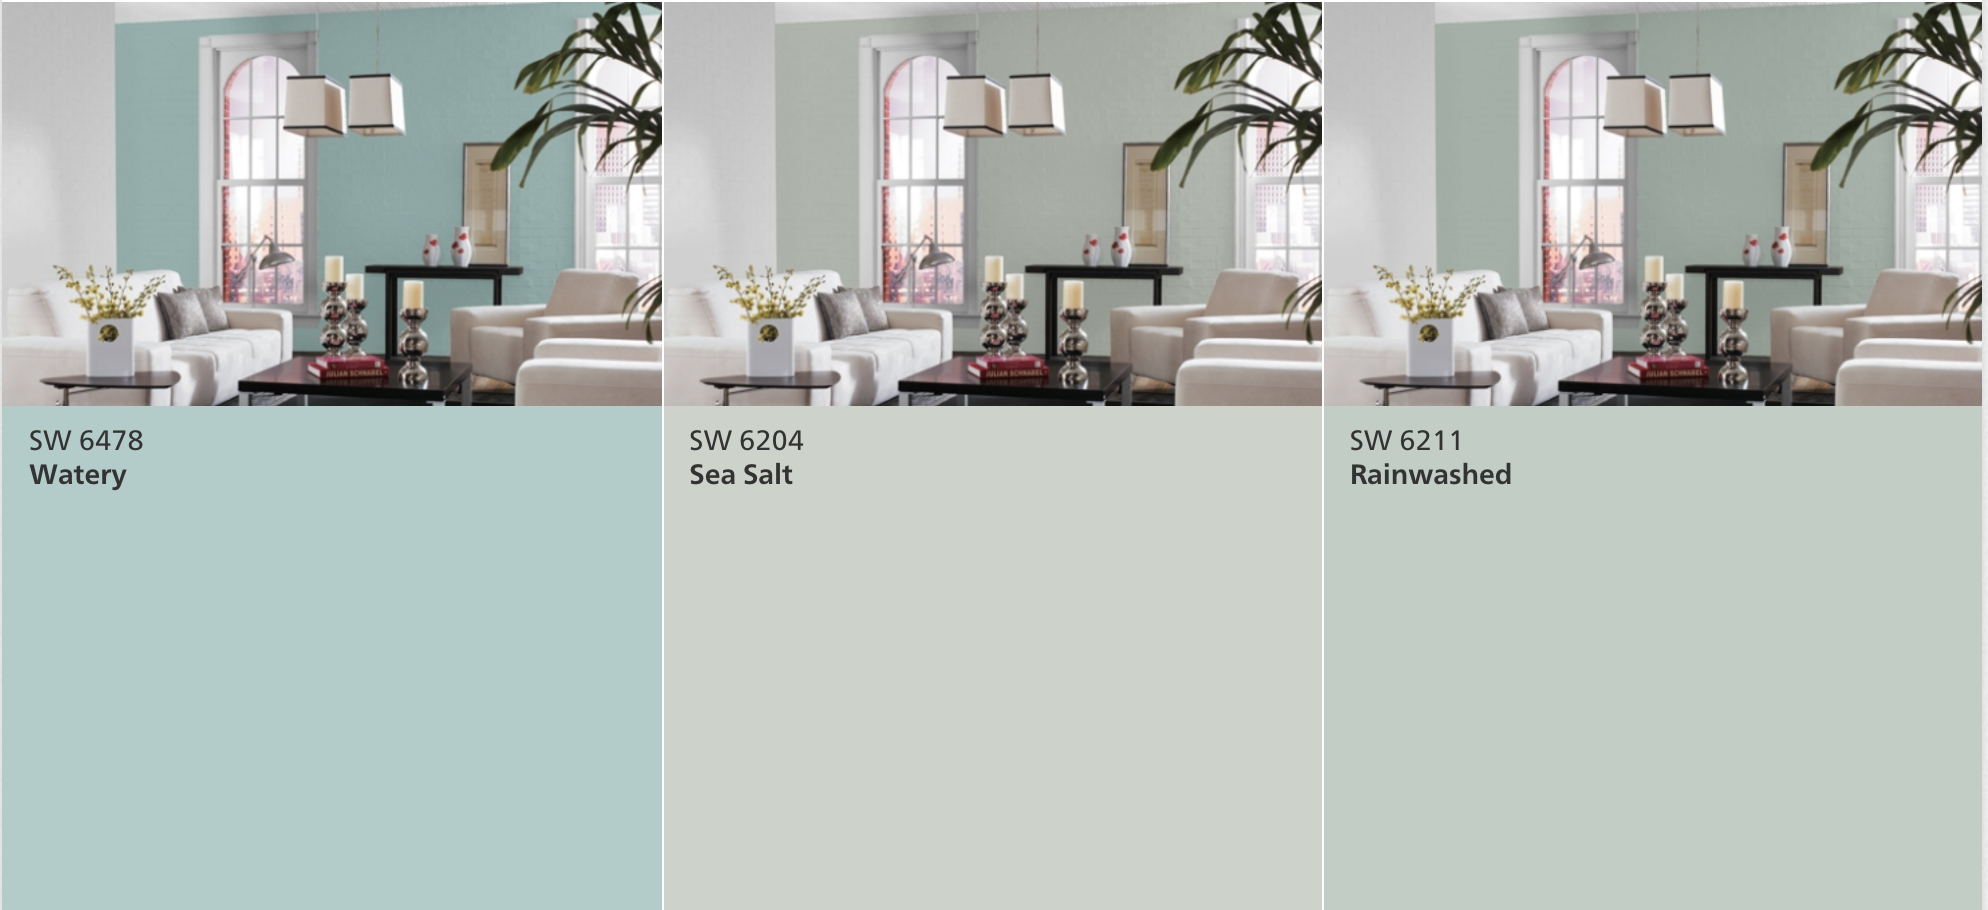 Sherwin Williams: Watery vs Sea Salt vs Rainwashed | Real life ... on sherwin williams comfort gray bathroom, beadboard bathroom, sherwin-williams oyster bay bathroom, sherwin-williams waterscape bathroom,